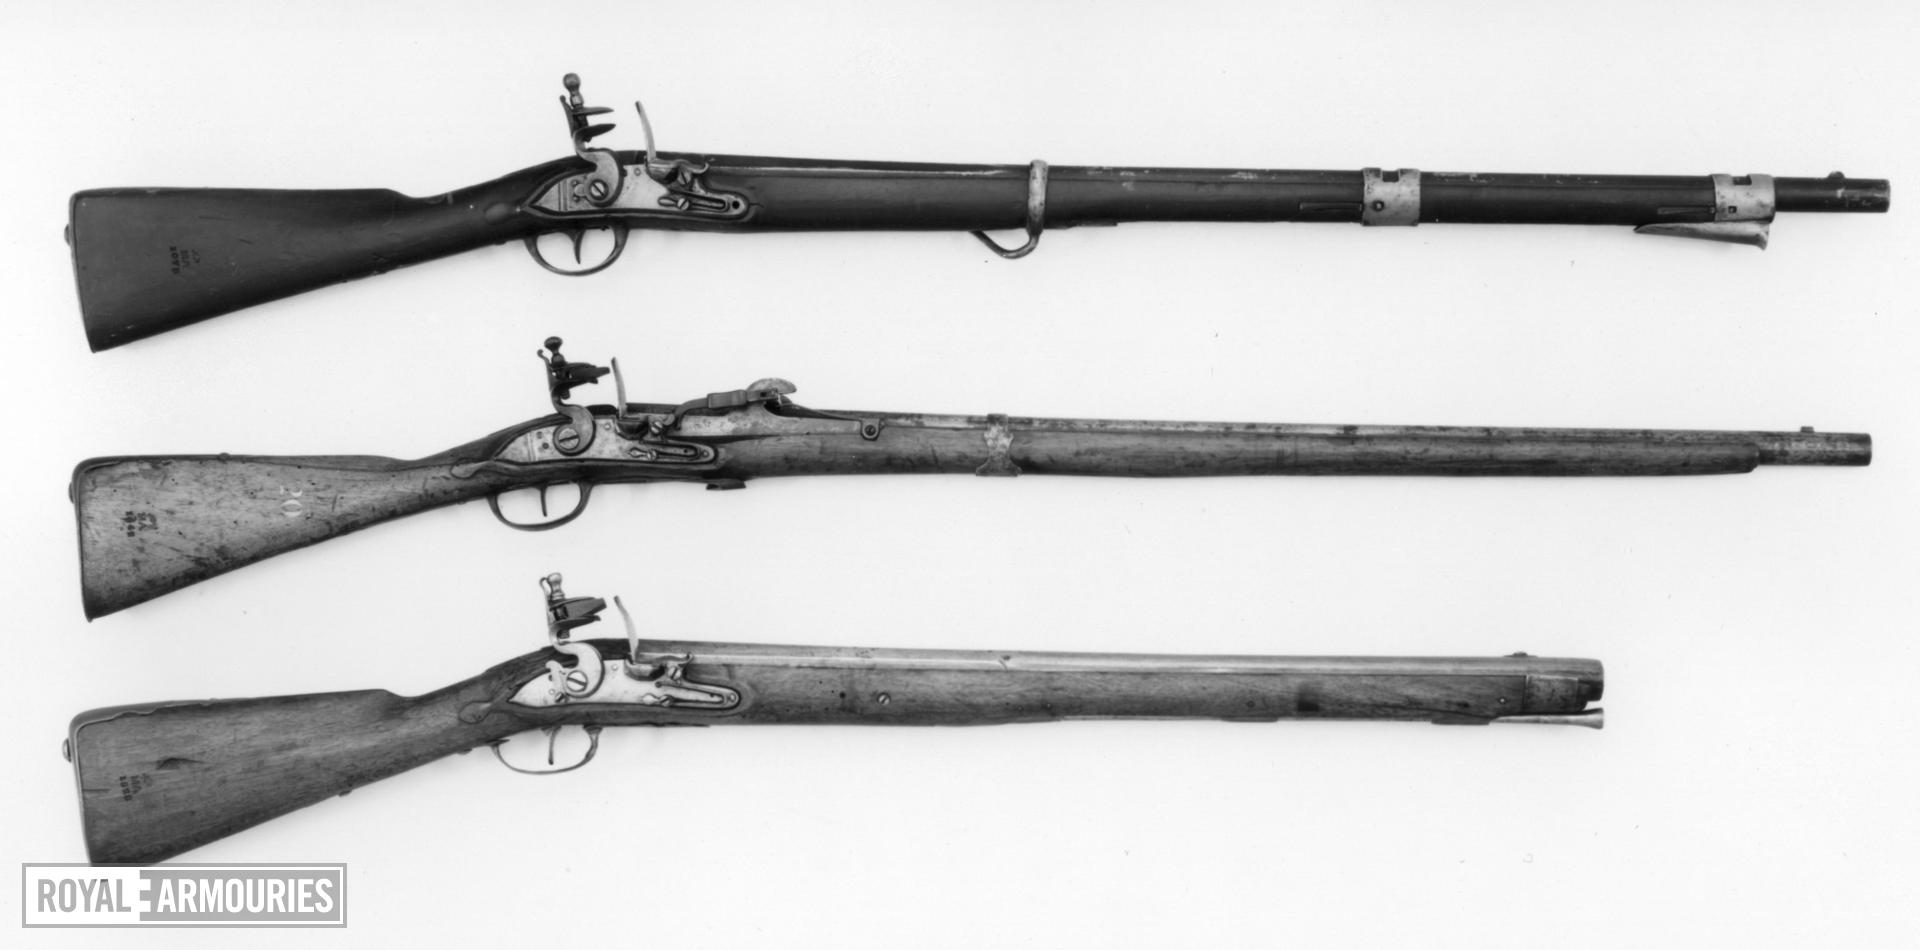 Flintlock muzzle-loading military carbine - Model 1770 Long Carbine, for Cuirassiers and Dragoons